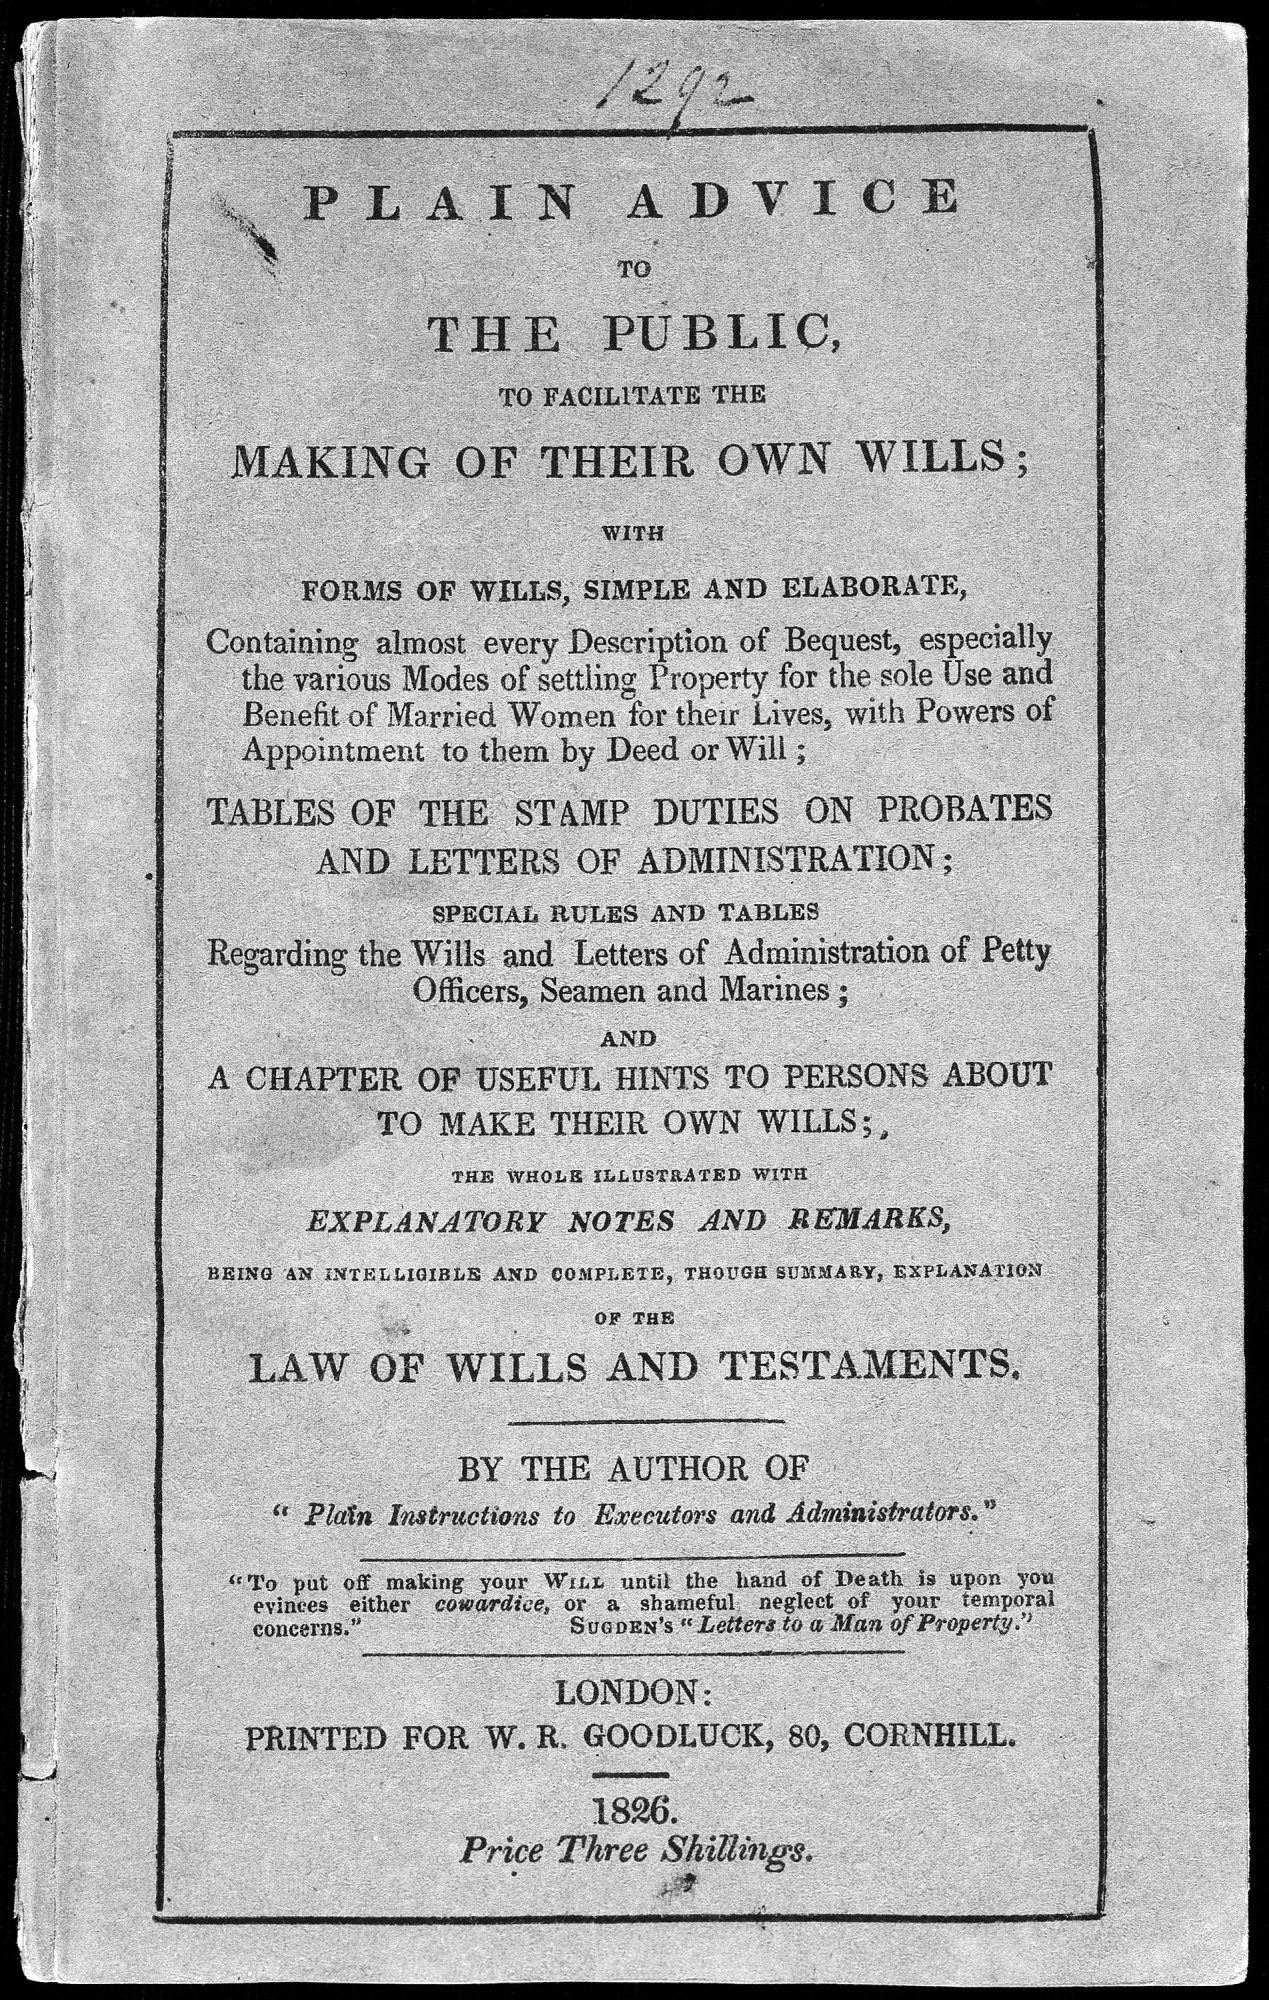 Plain Advice to the Public. . .Making of Wills